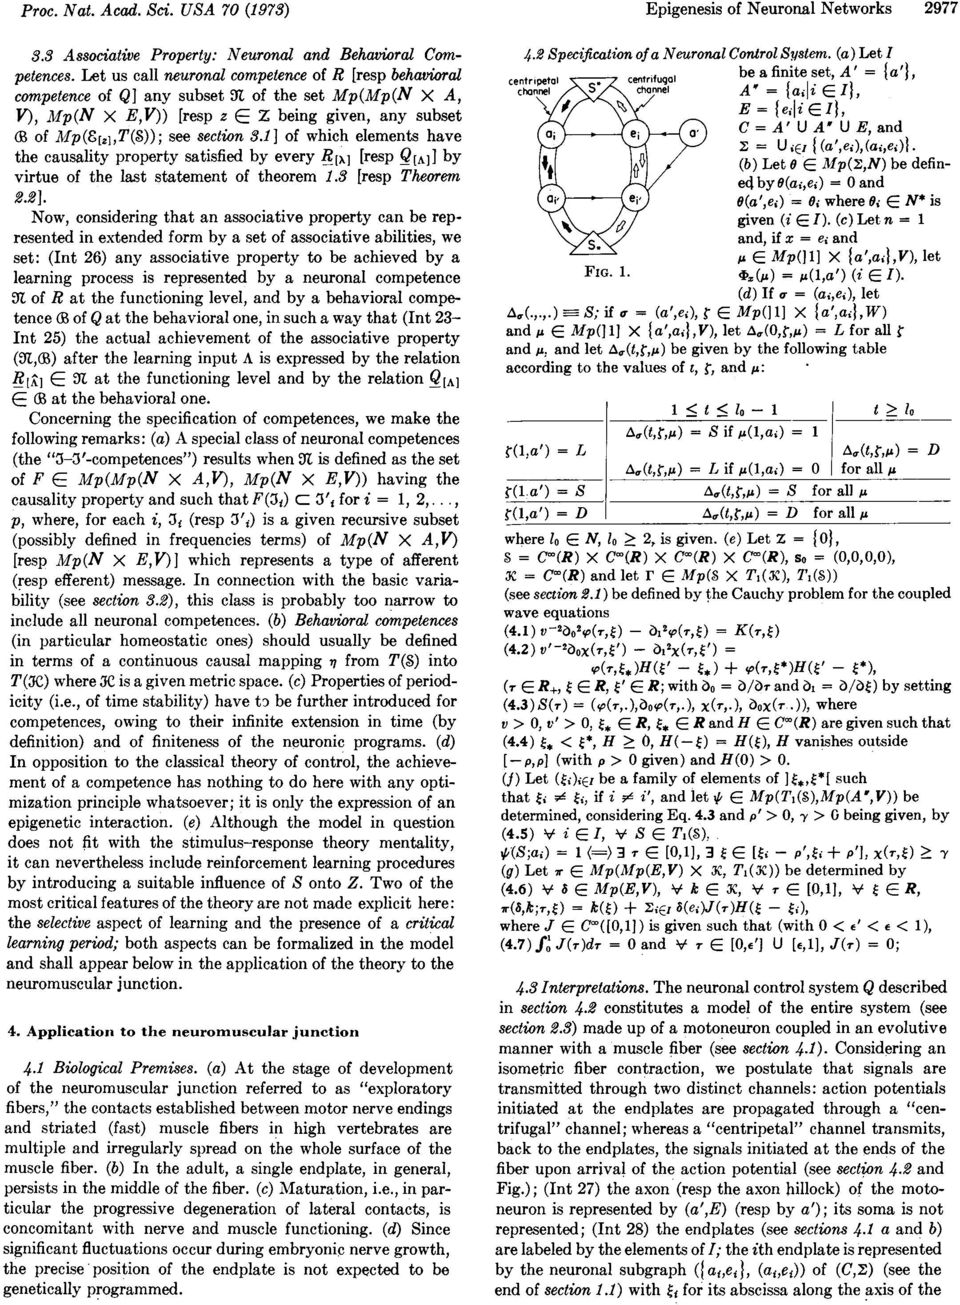 1] of which elements have the causality property satisfied by every R[X] [resp Q[AII by virtue of the last statement of theorem 1.3 [resp Theorem 2.2].